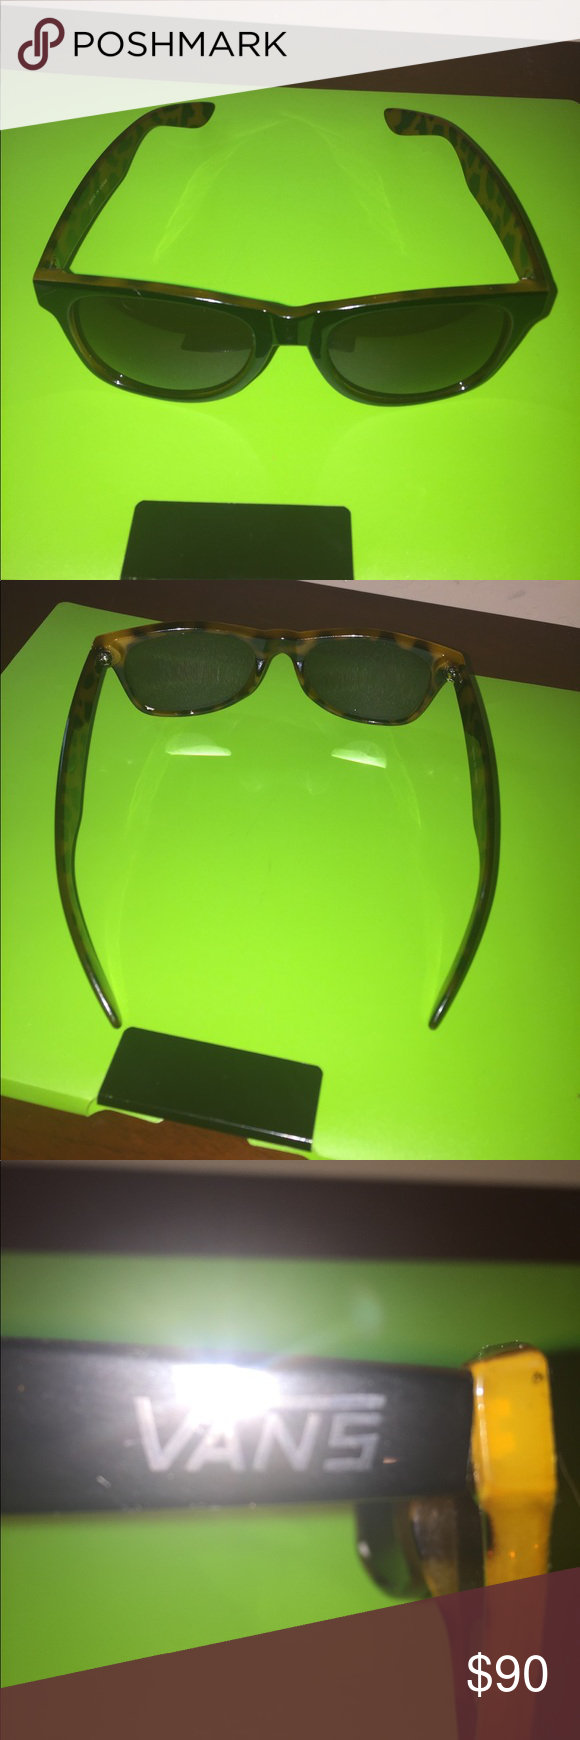 Free Vans sunglasses with a purchase over $10. Free Vans sunglasses with a purchase over $10.  Add them to your listing and you will not be charged for them.  Only 1 pair available.  1st person to add to their listing gets it.They are in average shape but still have a lot of wear left.  That is why they are free with a purchase over $10 vans Accessories Glasses